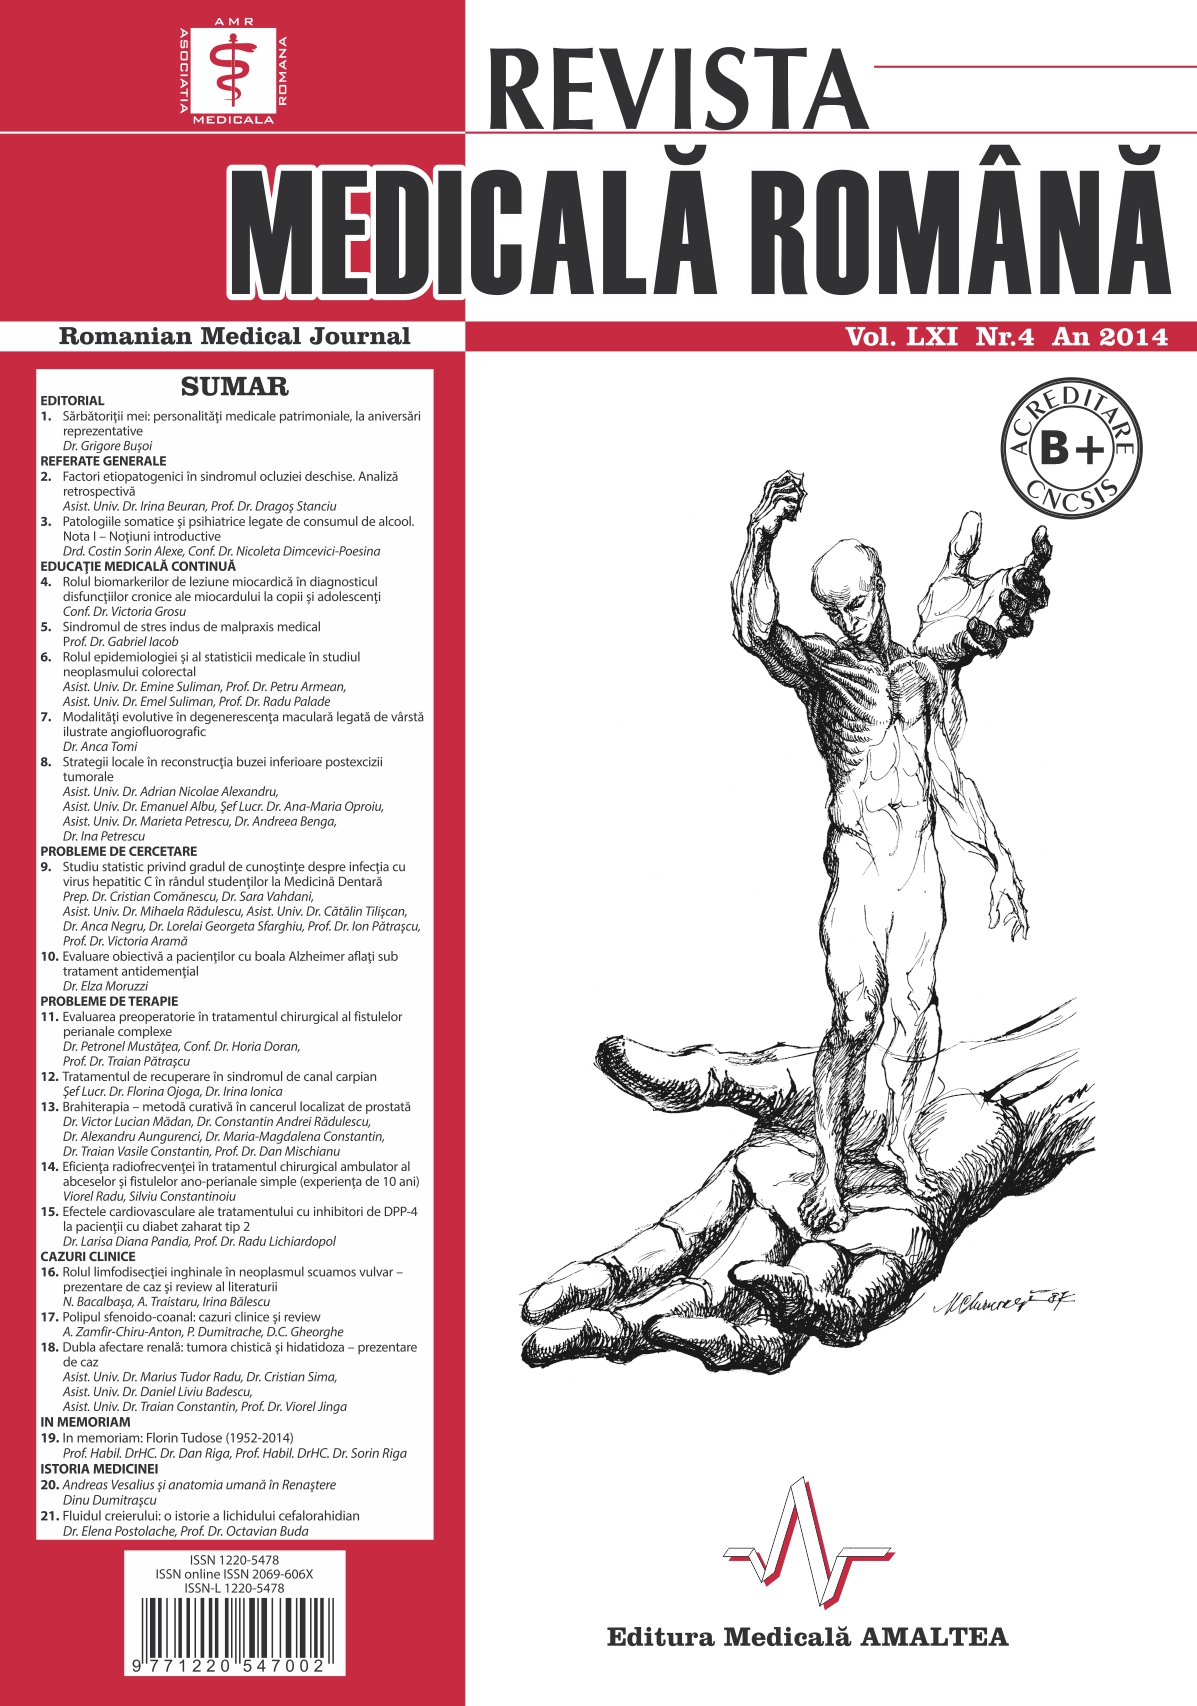 REVISTA MEDICALA ROMANA - Romanian Medical Journal, Vol. LXI, Nr. 4, An 2014